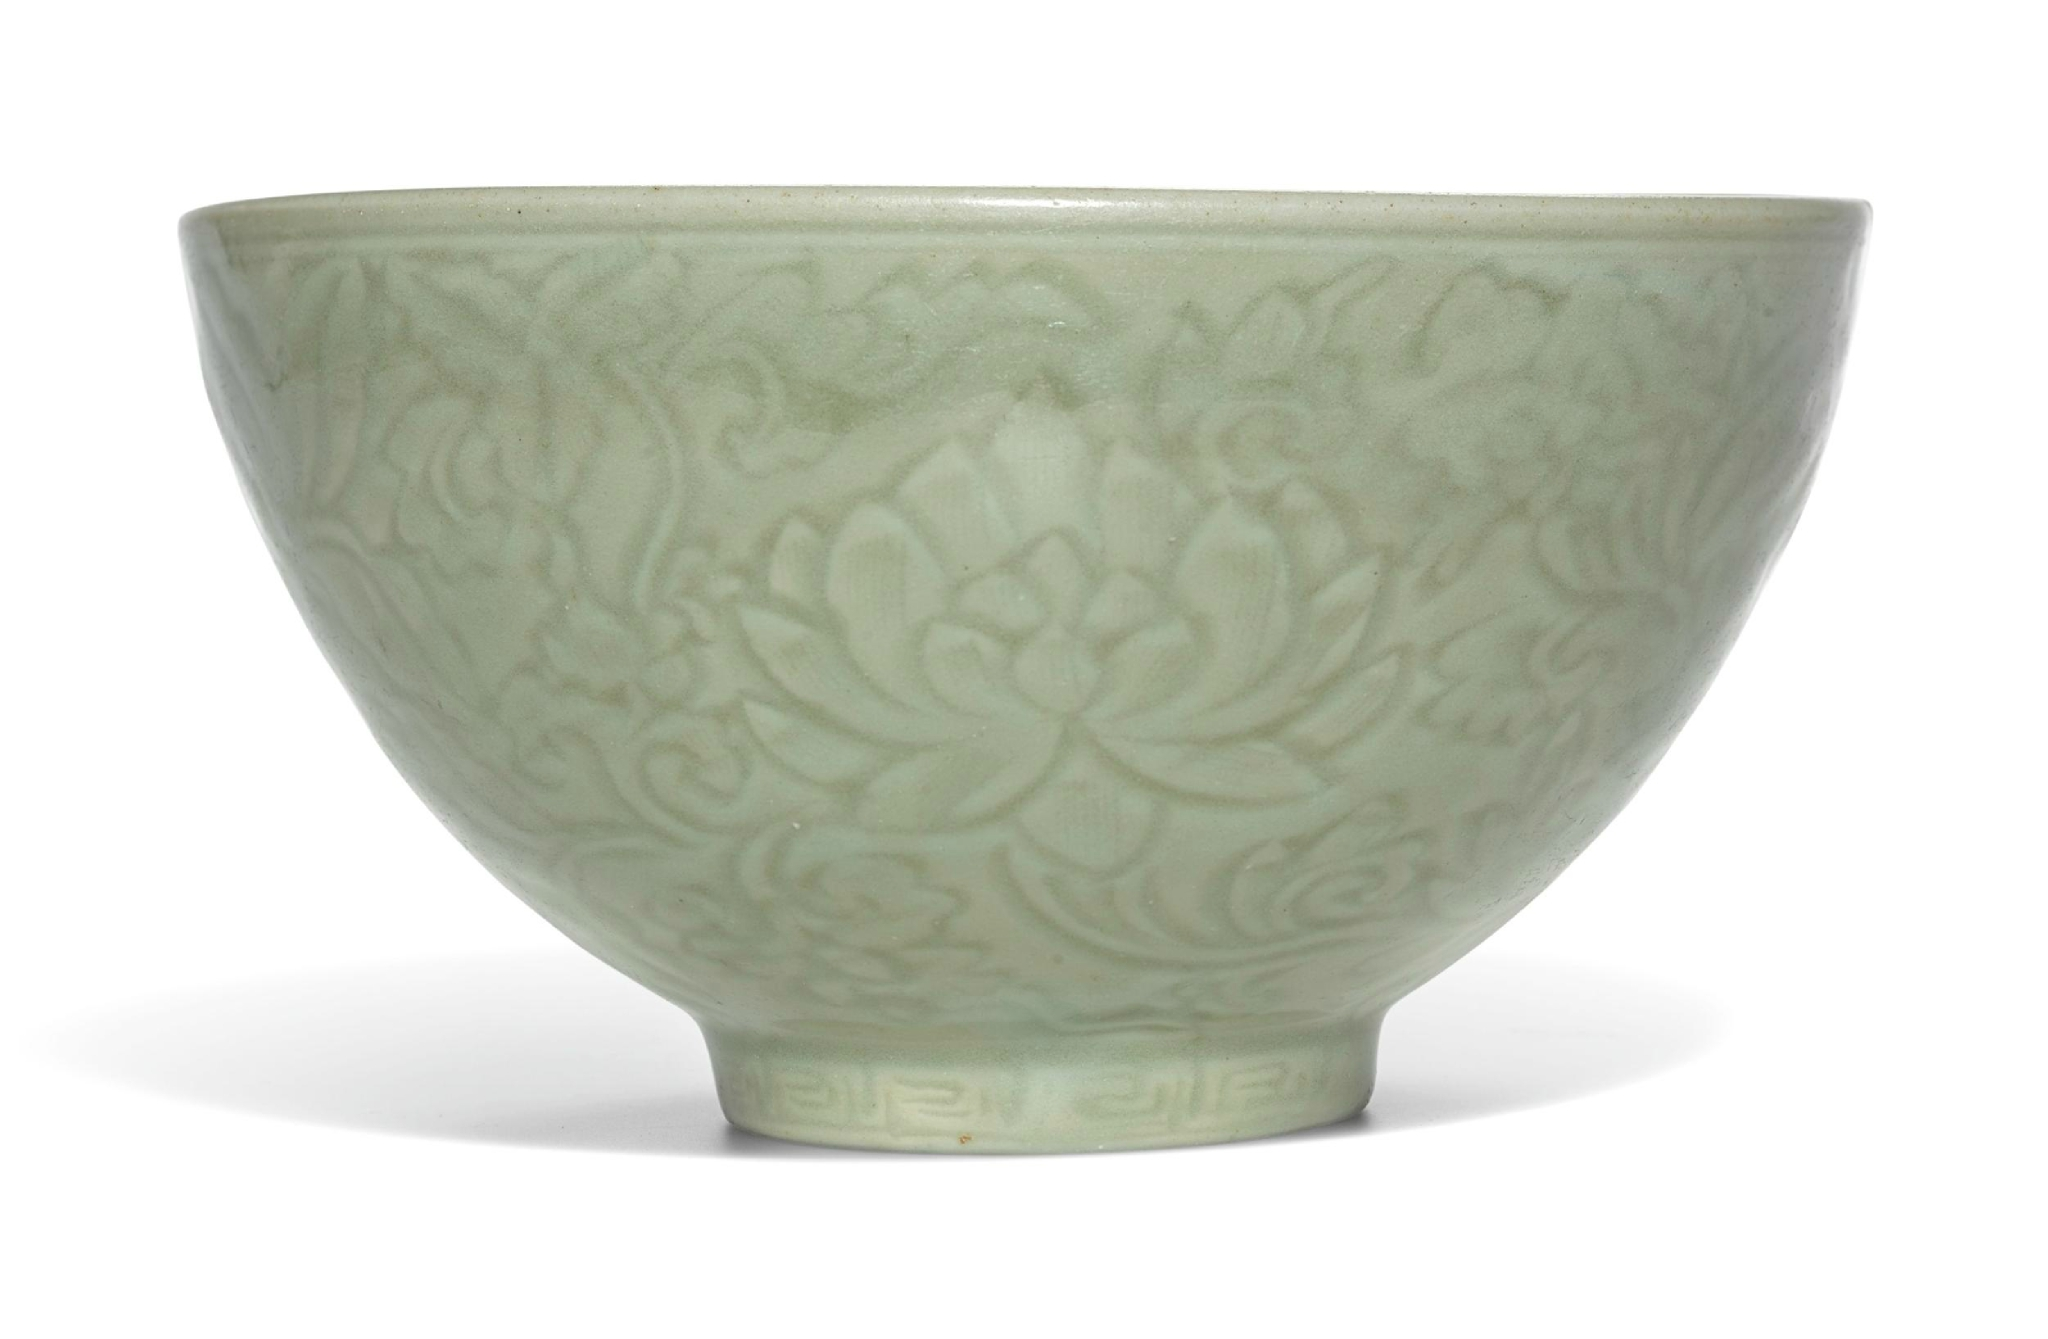 A rare carved 'Longquan' celadon bowl, Ming Dynasty, early 15th century